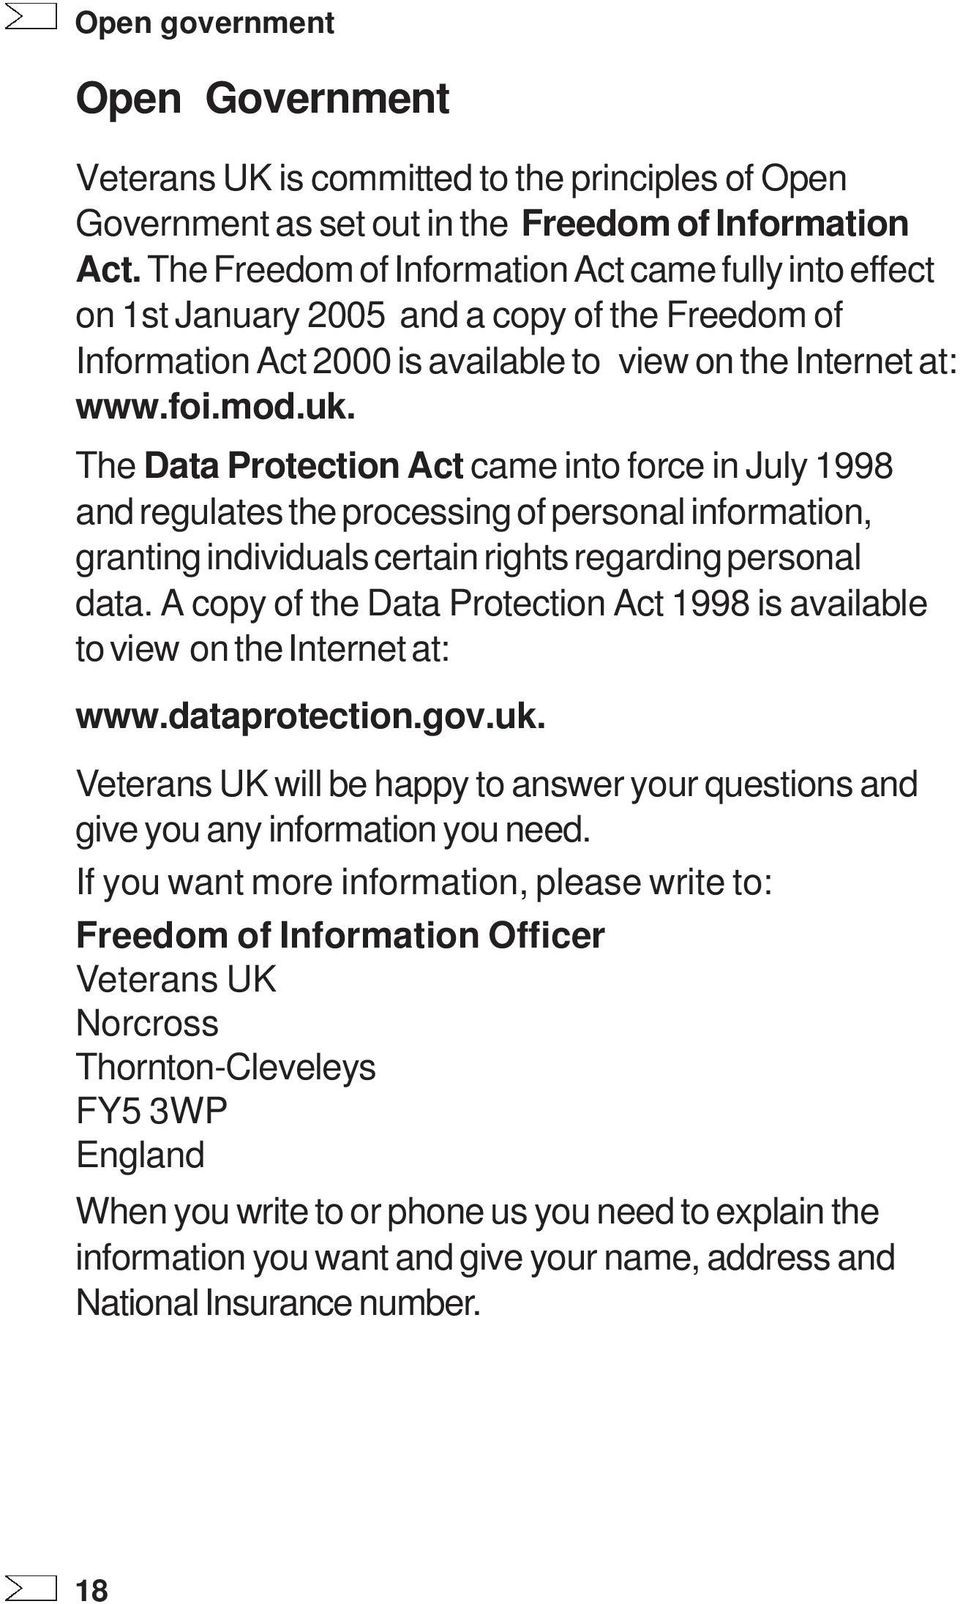 The Data Protection Act came into force in July 1998 and regulates the processing of personal information, granting individuals certain rights regarding personal data.